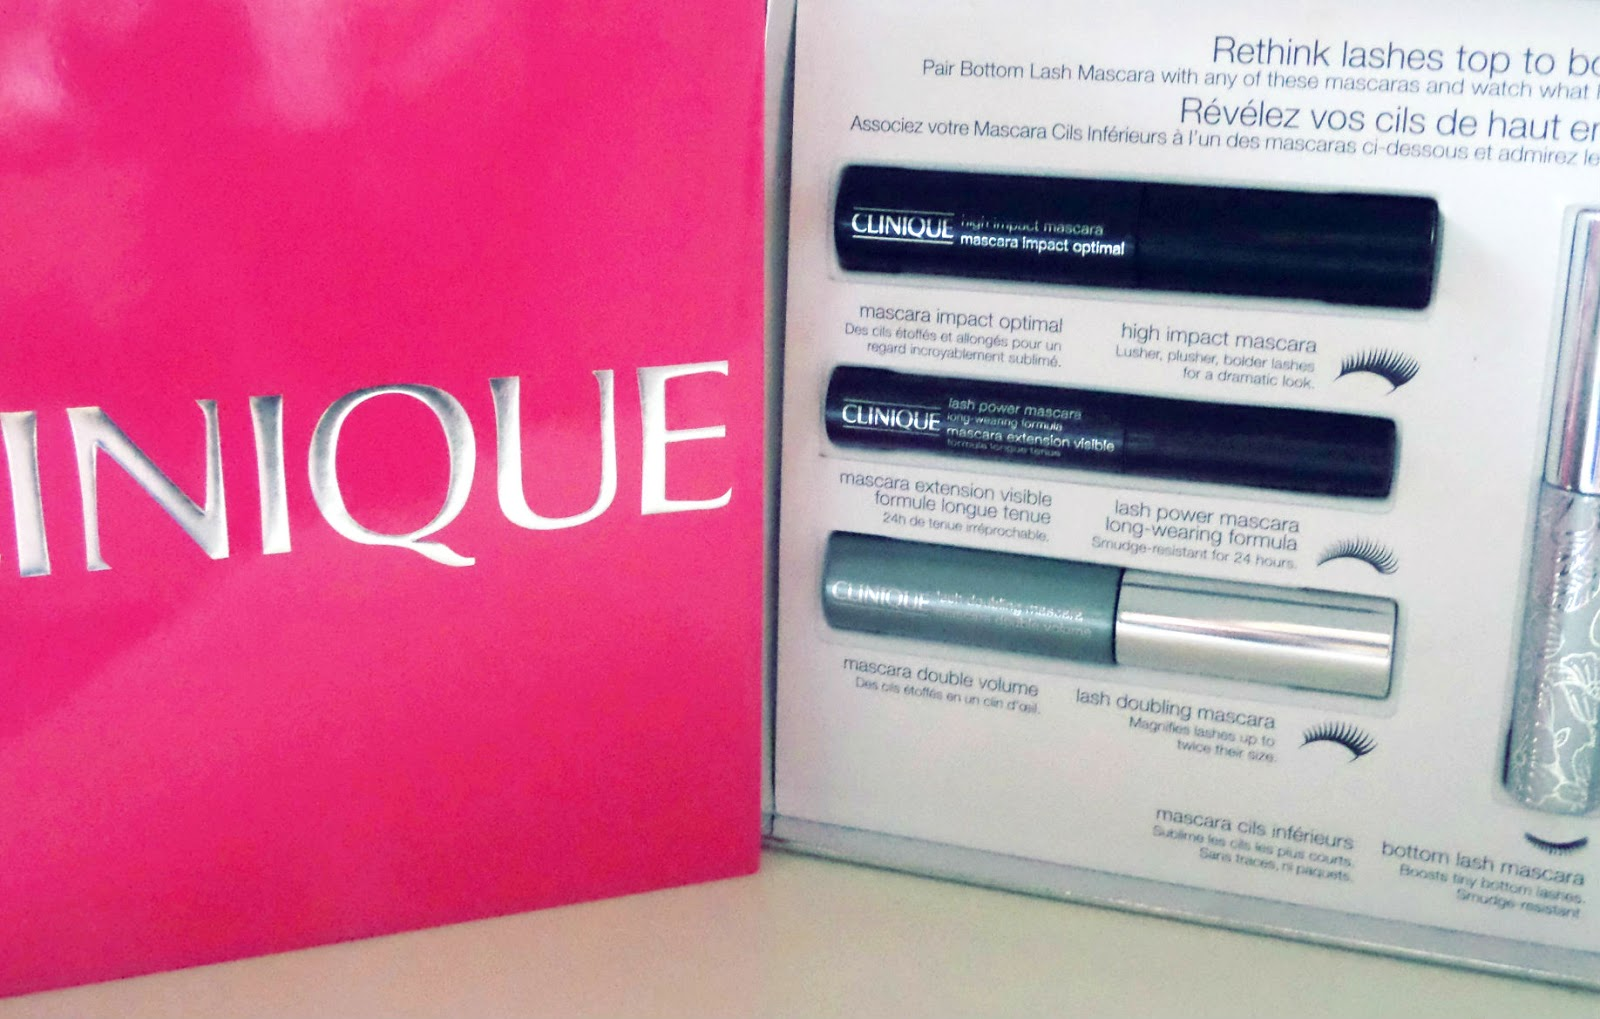 Clinique Lashes Top to Bottom Gift Set Mascaras